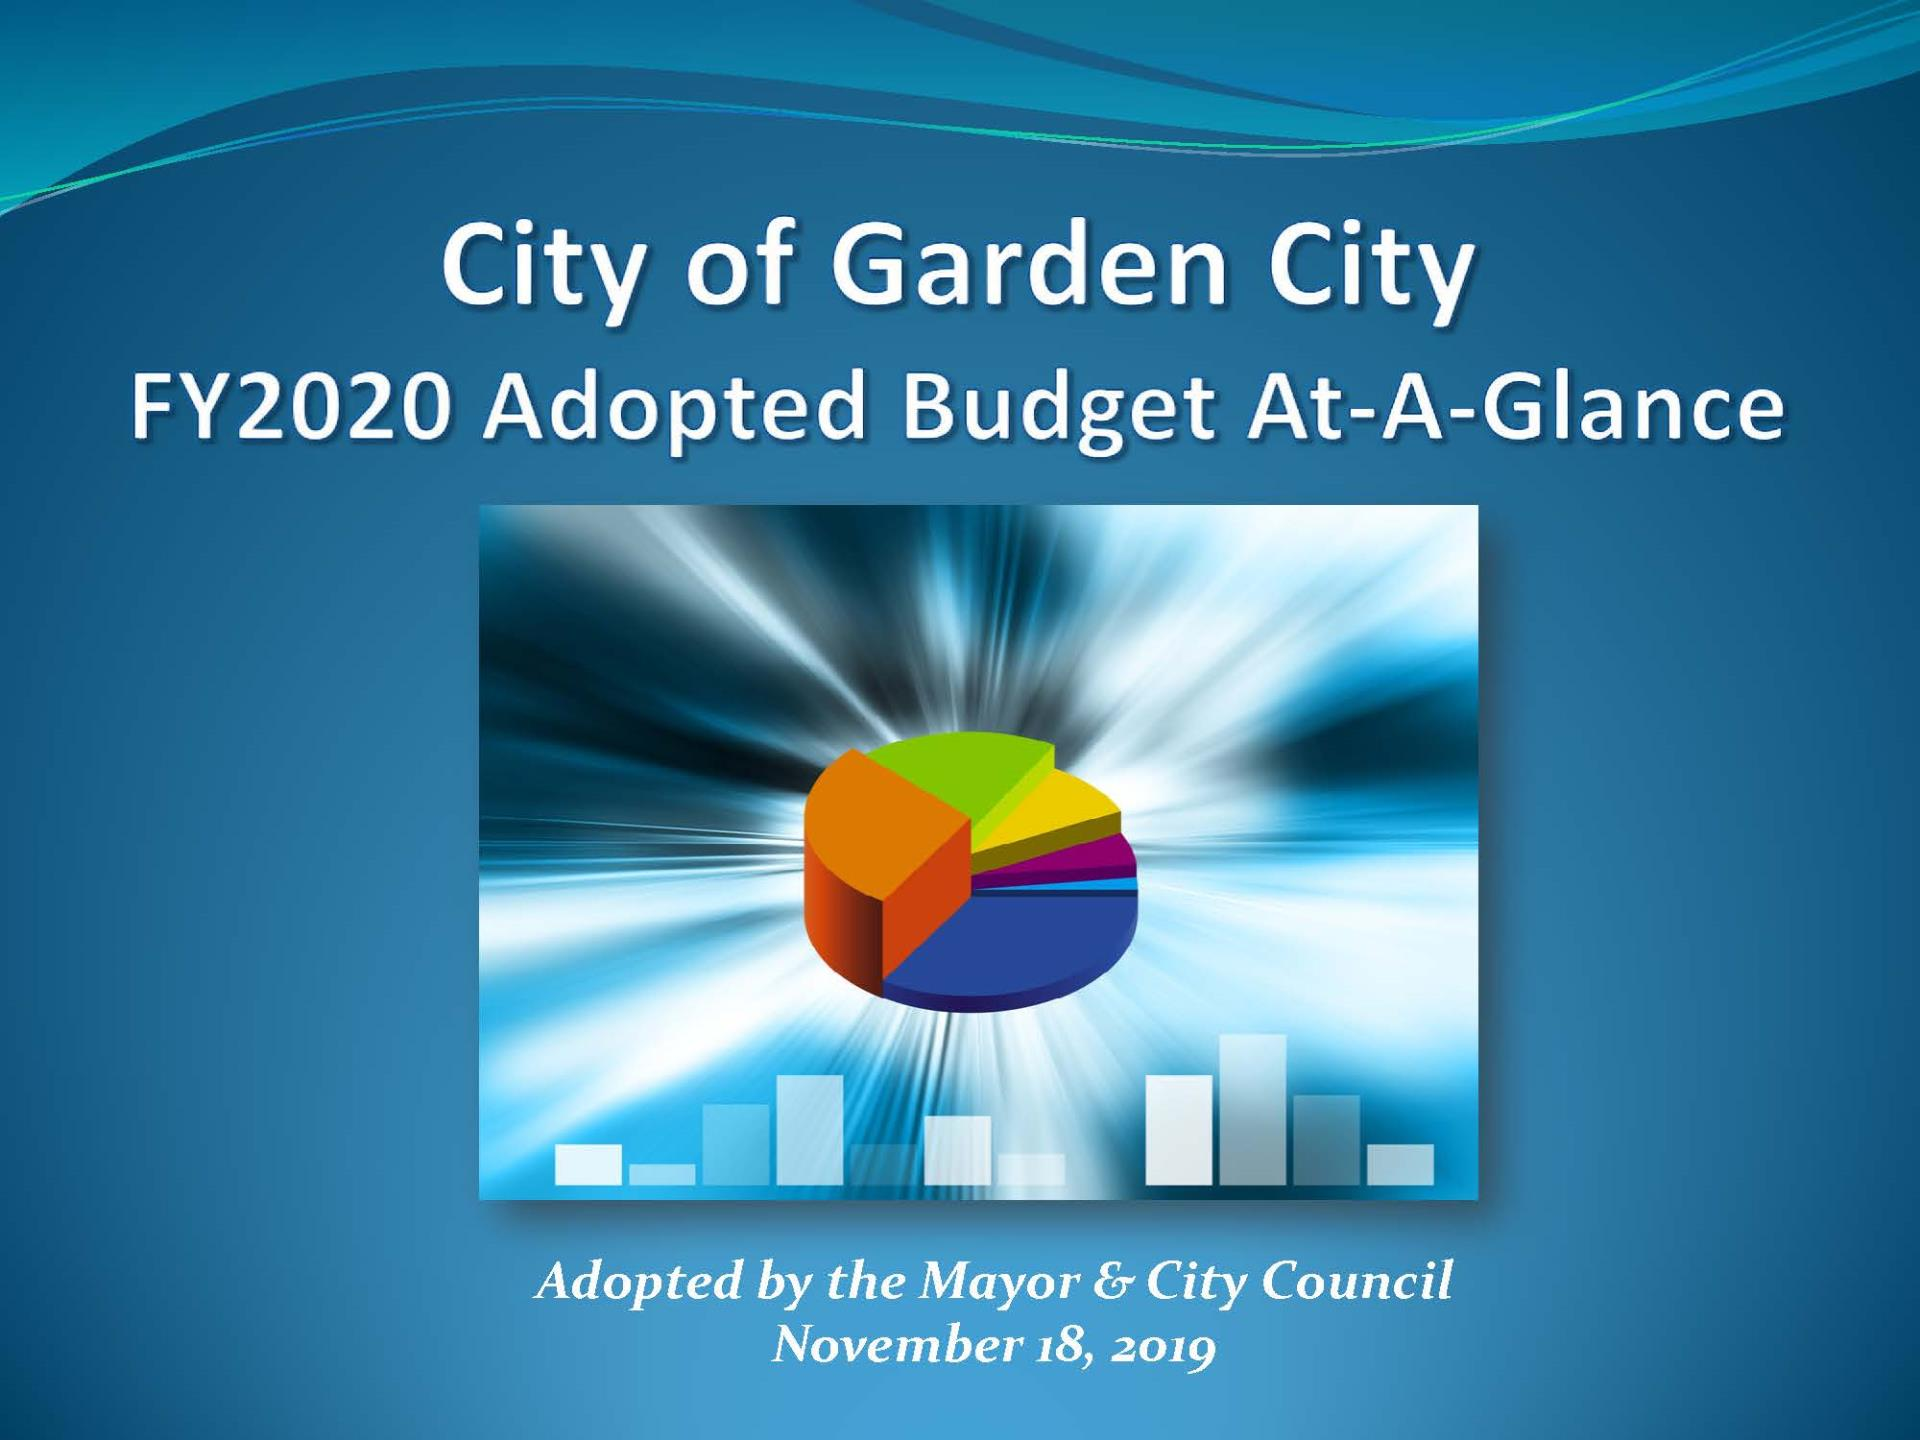 Check out Garden City's FY2020 Adopted Budget At-A-Glance!